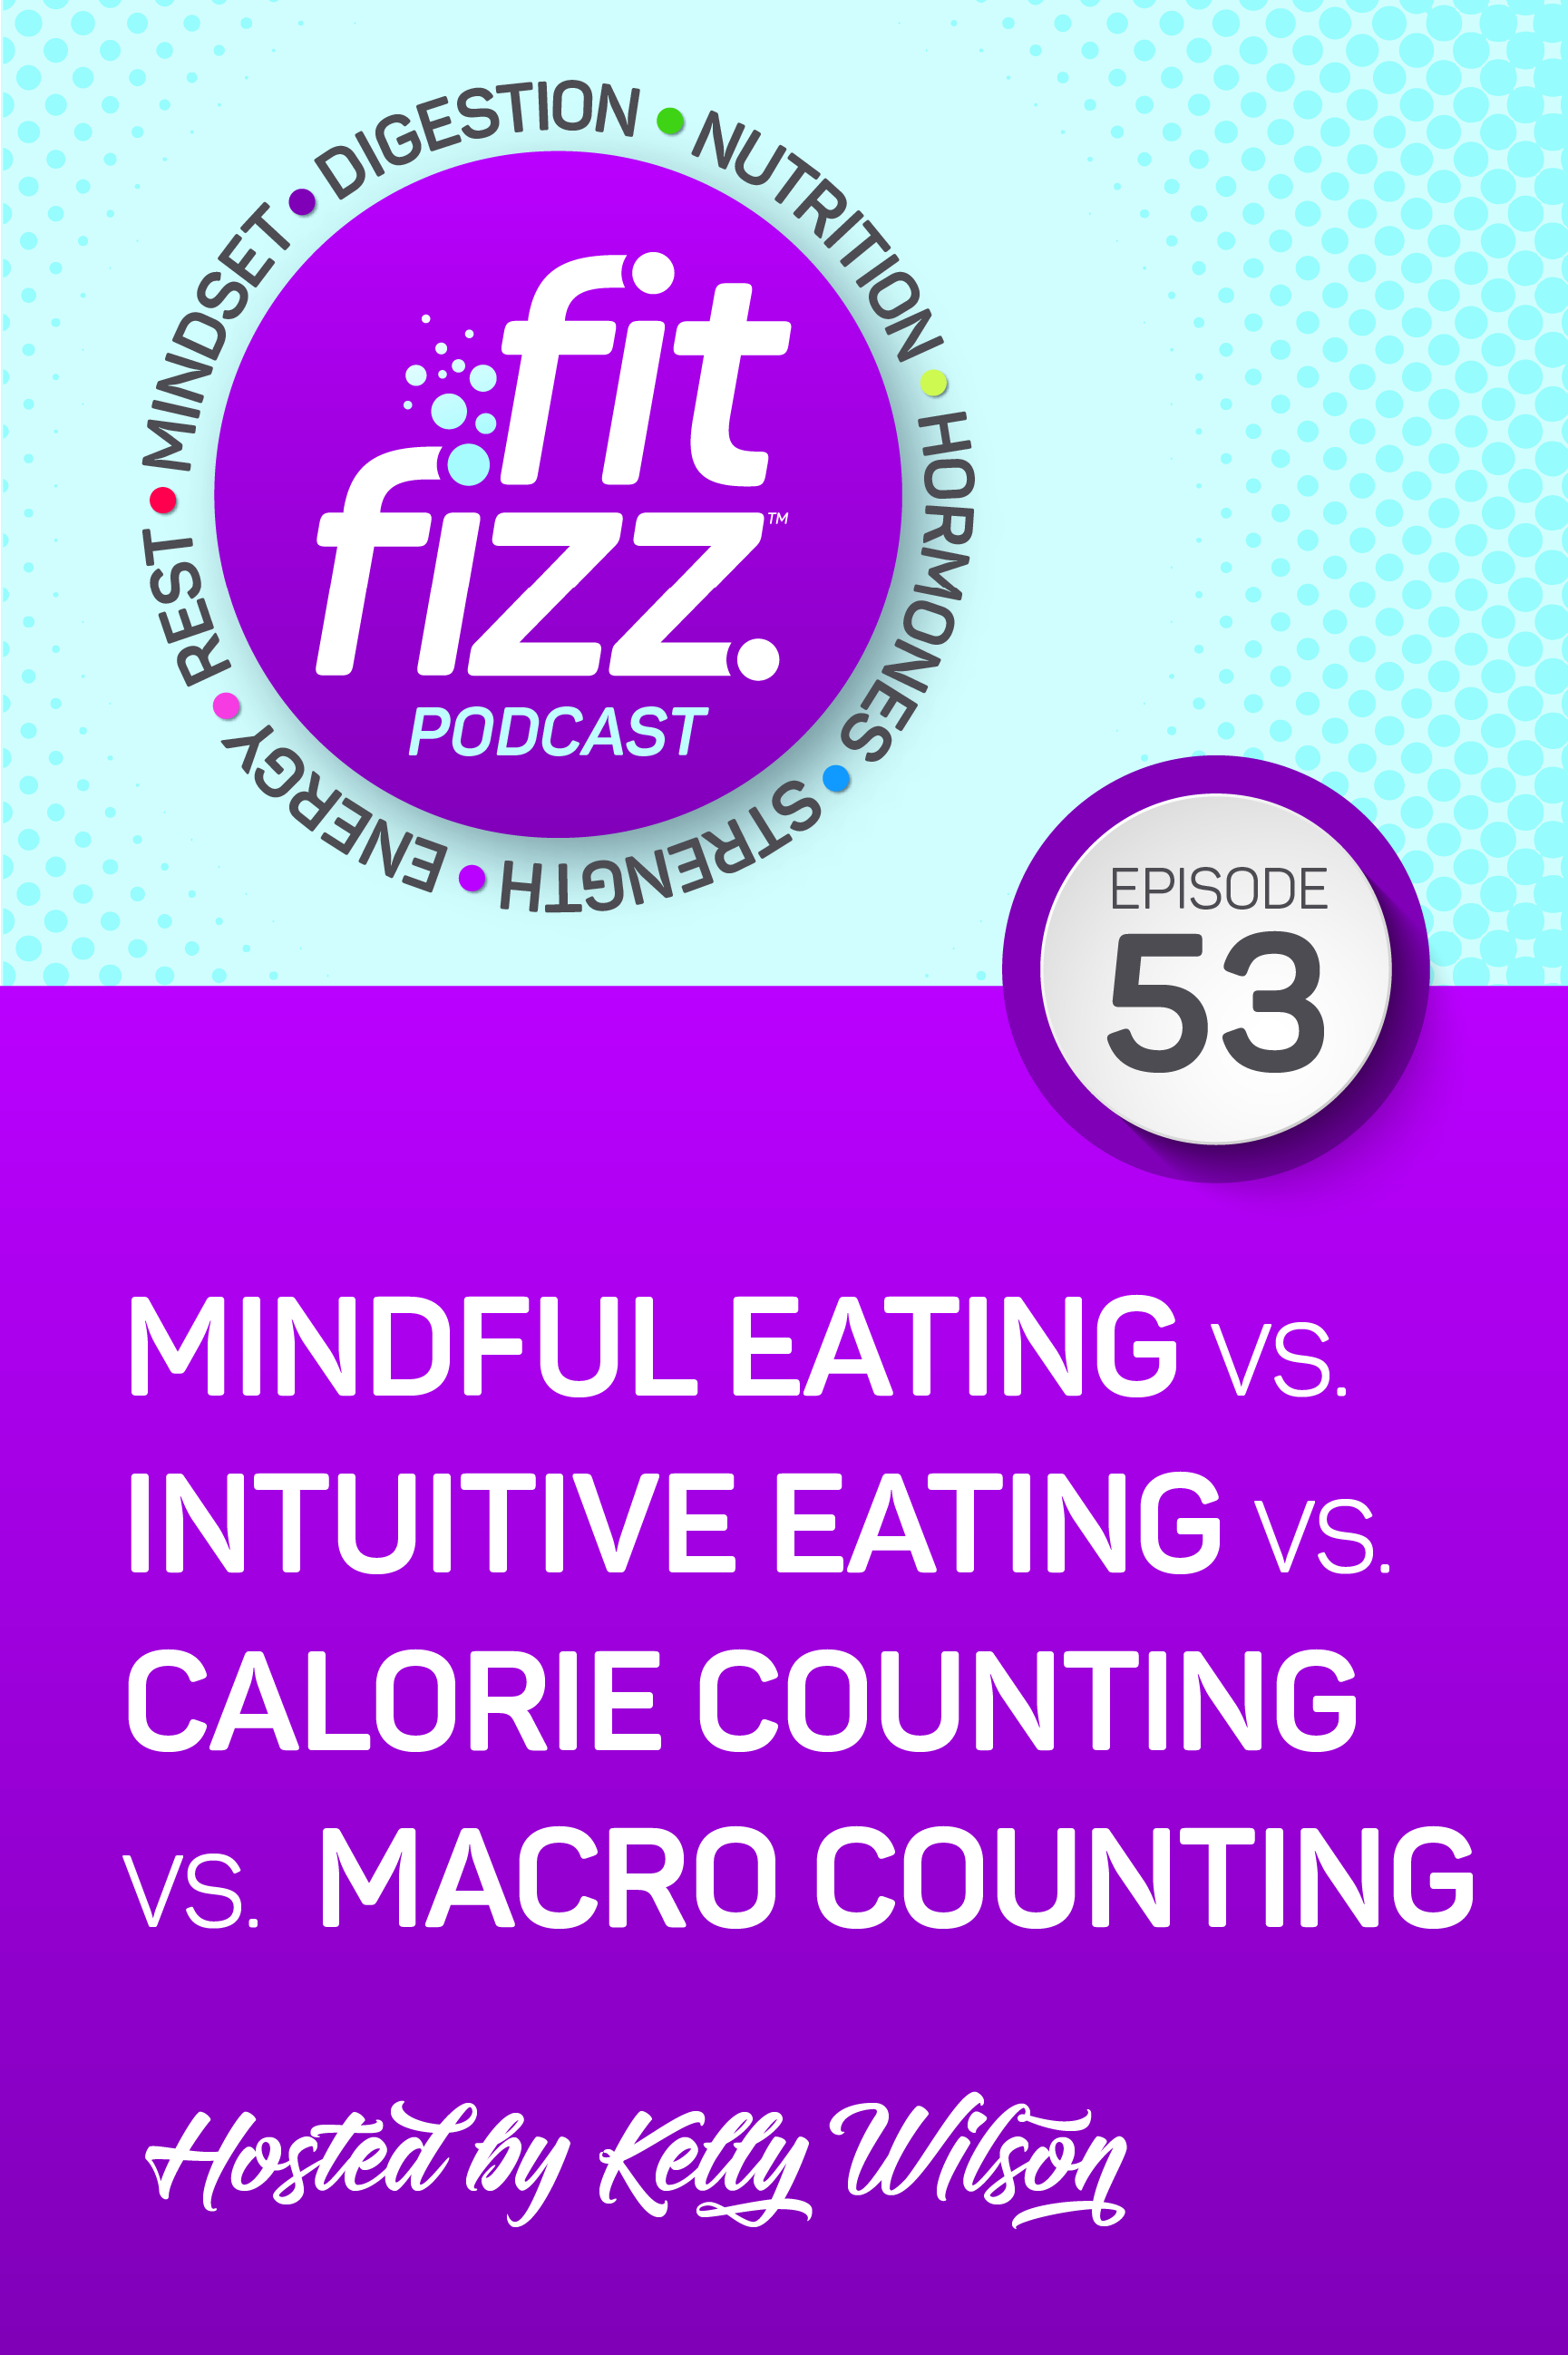 Ep. 53: Mindful Eating vs. Intuitive Eating vs. Calorie Counting vs. Macro Counting